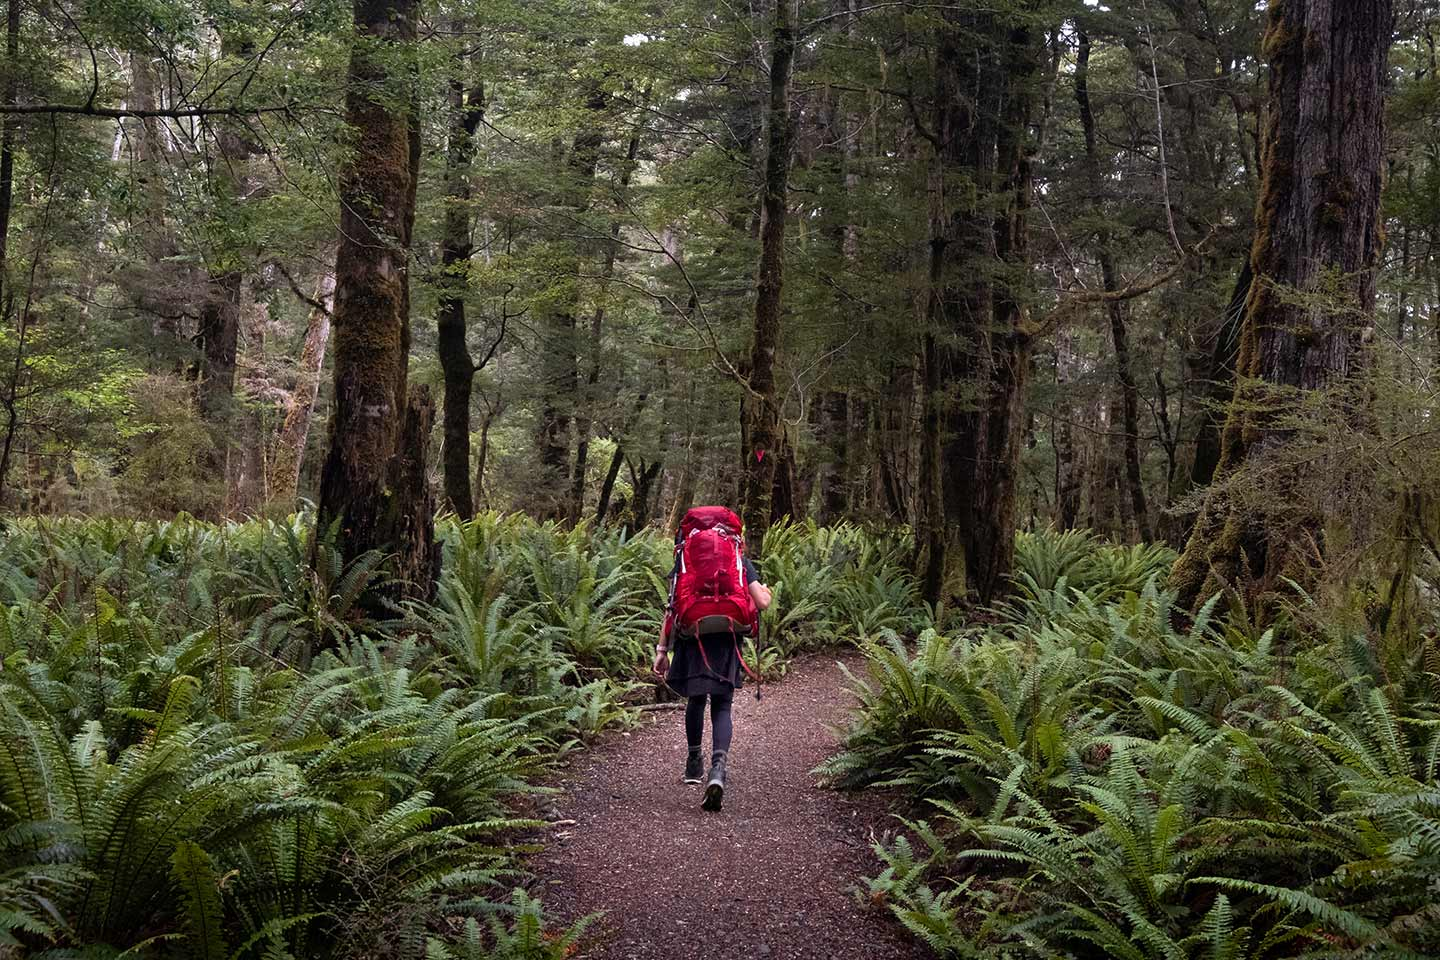 A woman with a large red backpack walks along a path. Either side of her the ground is covered in bright green ferns.